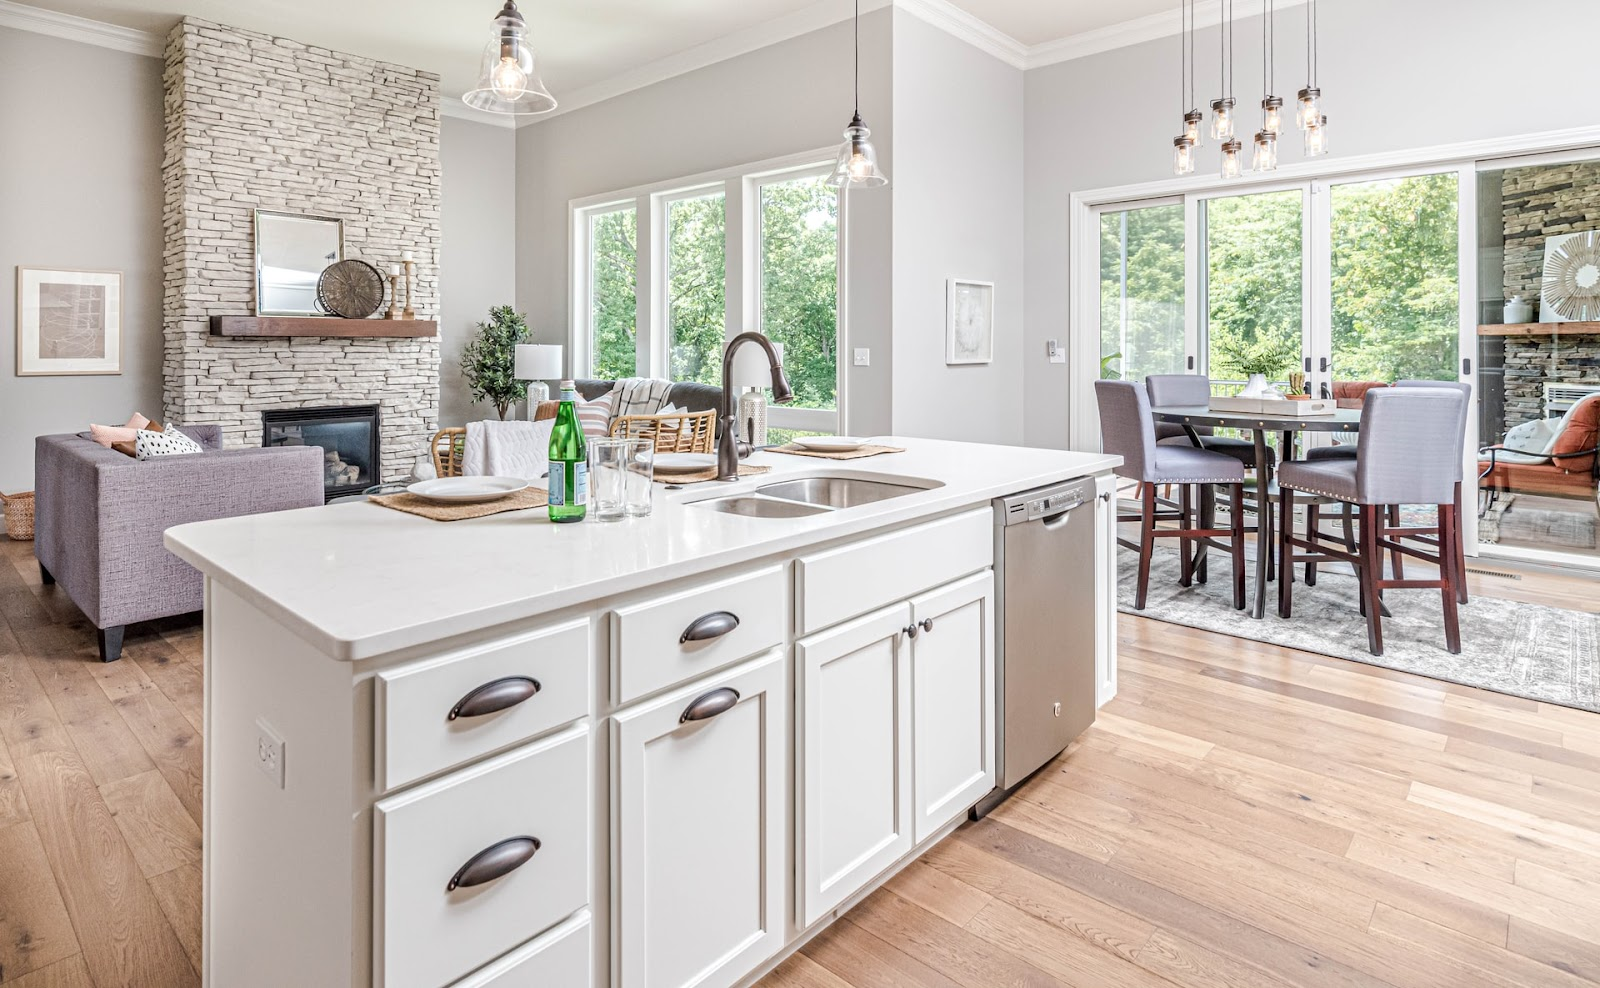 Open plan kitchen for a stylish and minimalist kitchen design; a white kitchen island with built-in features & cabinets